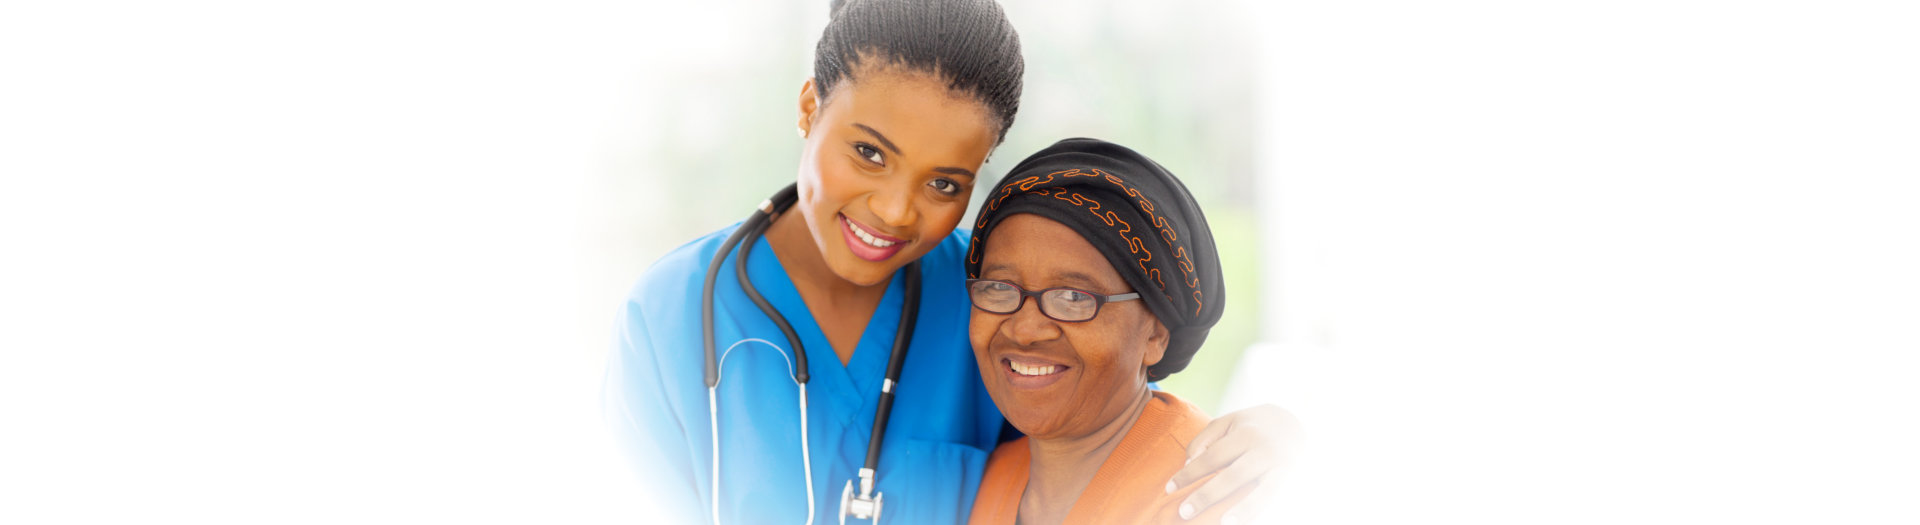 Asap Services Home Health Care Washington Dc